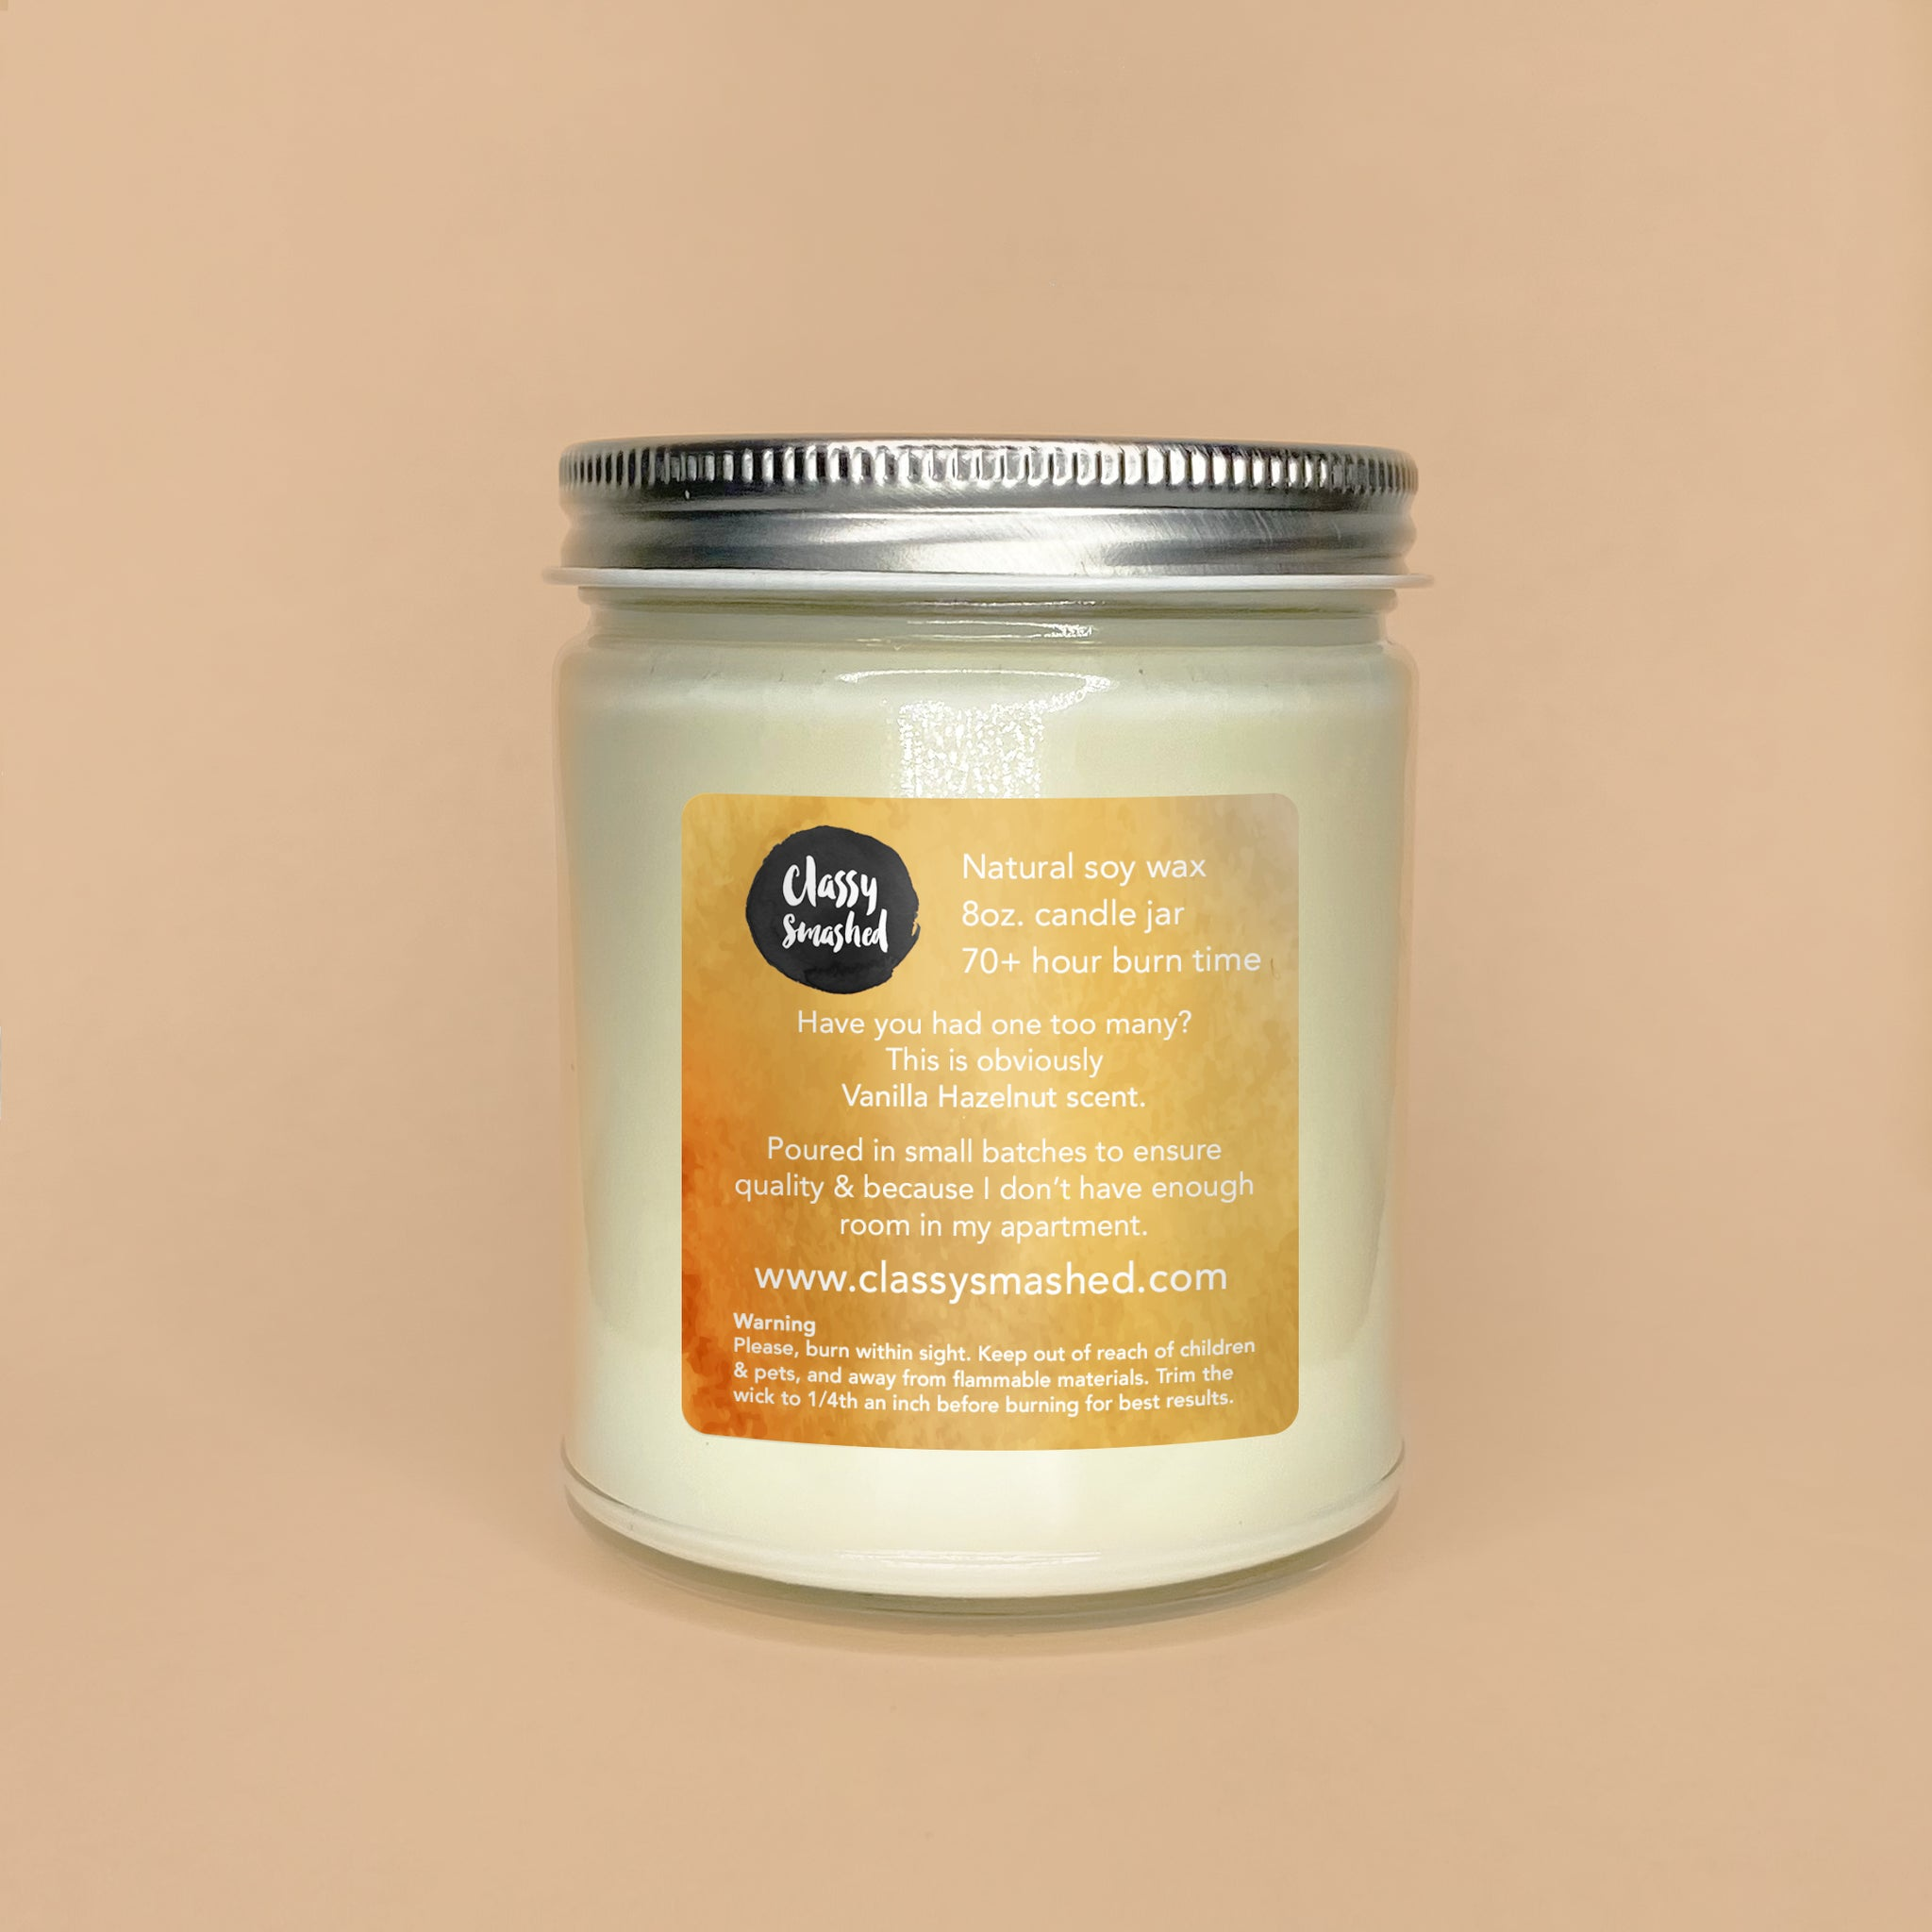 Who Is She? || Vanilla Hazelnut 8oz Jar